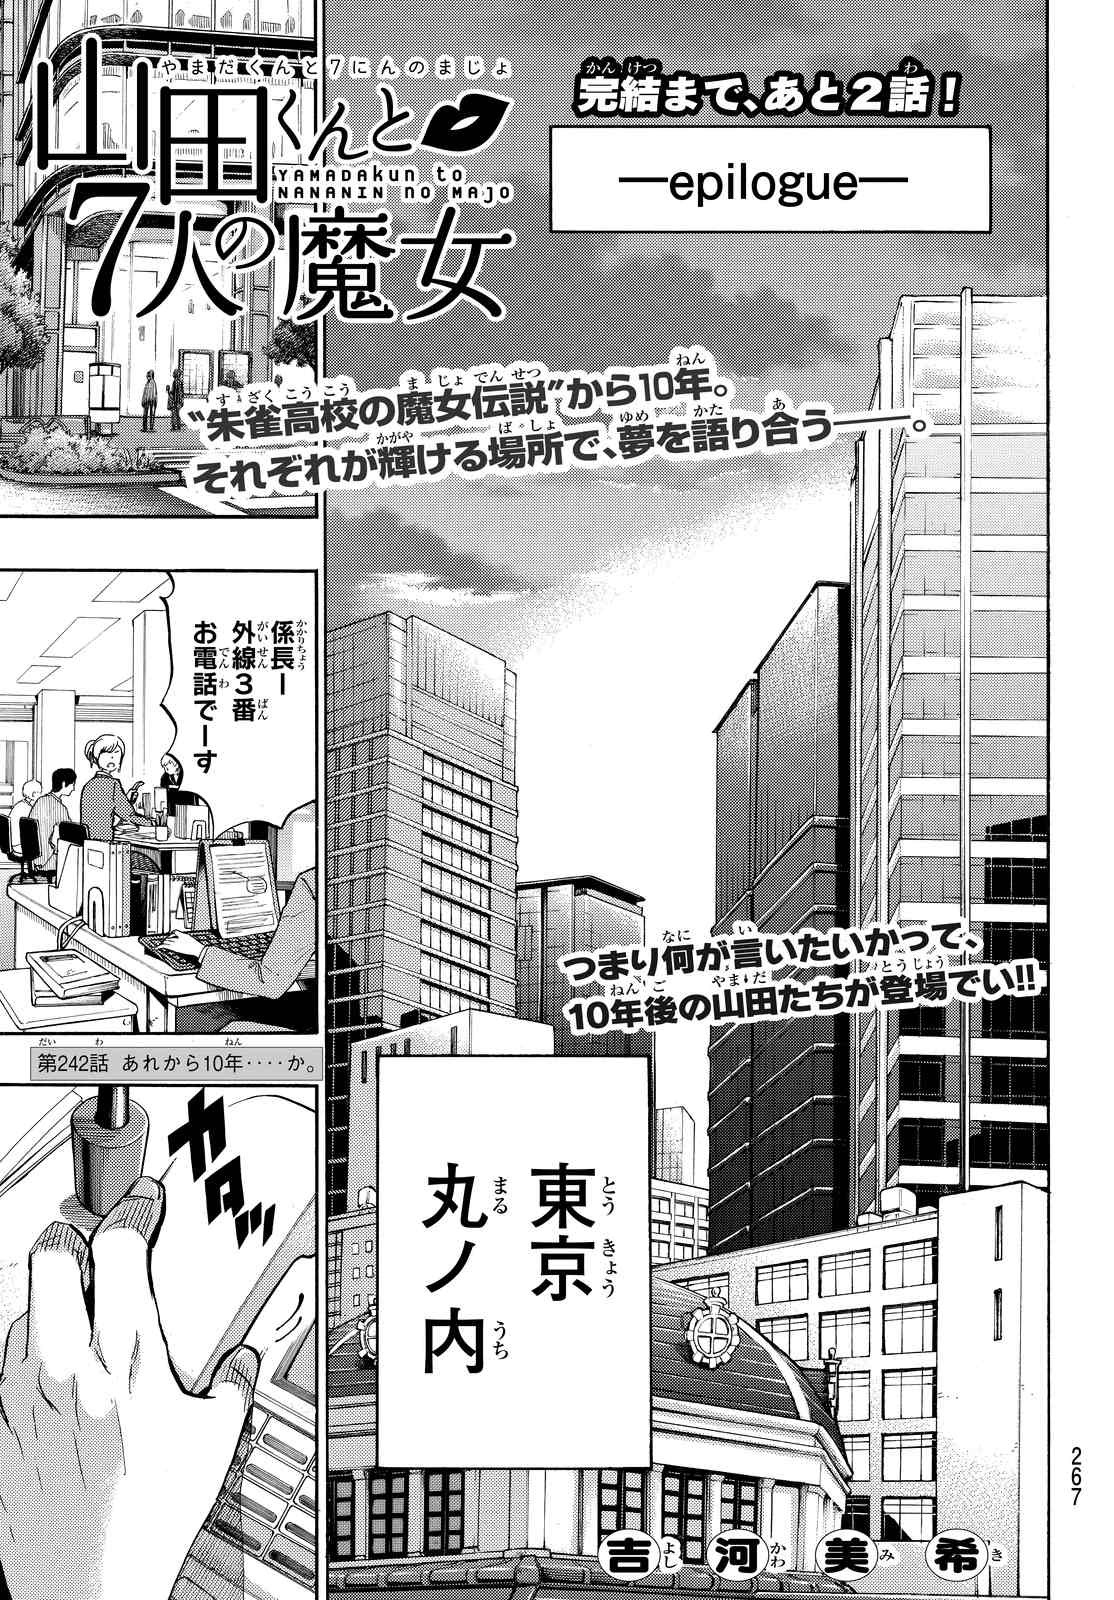 Sen Manga,Yamada-kun to 7-nin no Majo 242 raw,Loading Yamada-kun to 7-nin no Majo | Chapter  242 | Page 1 .....